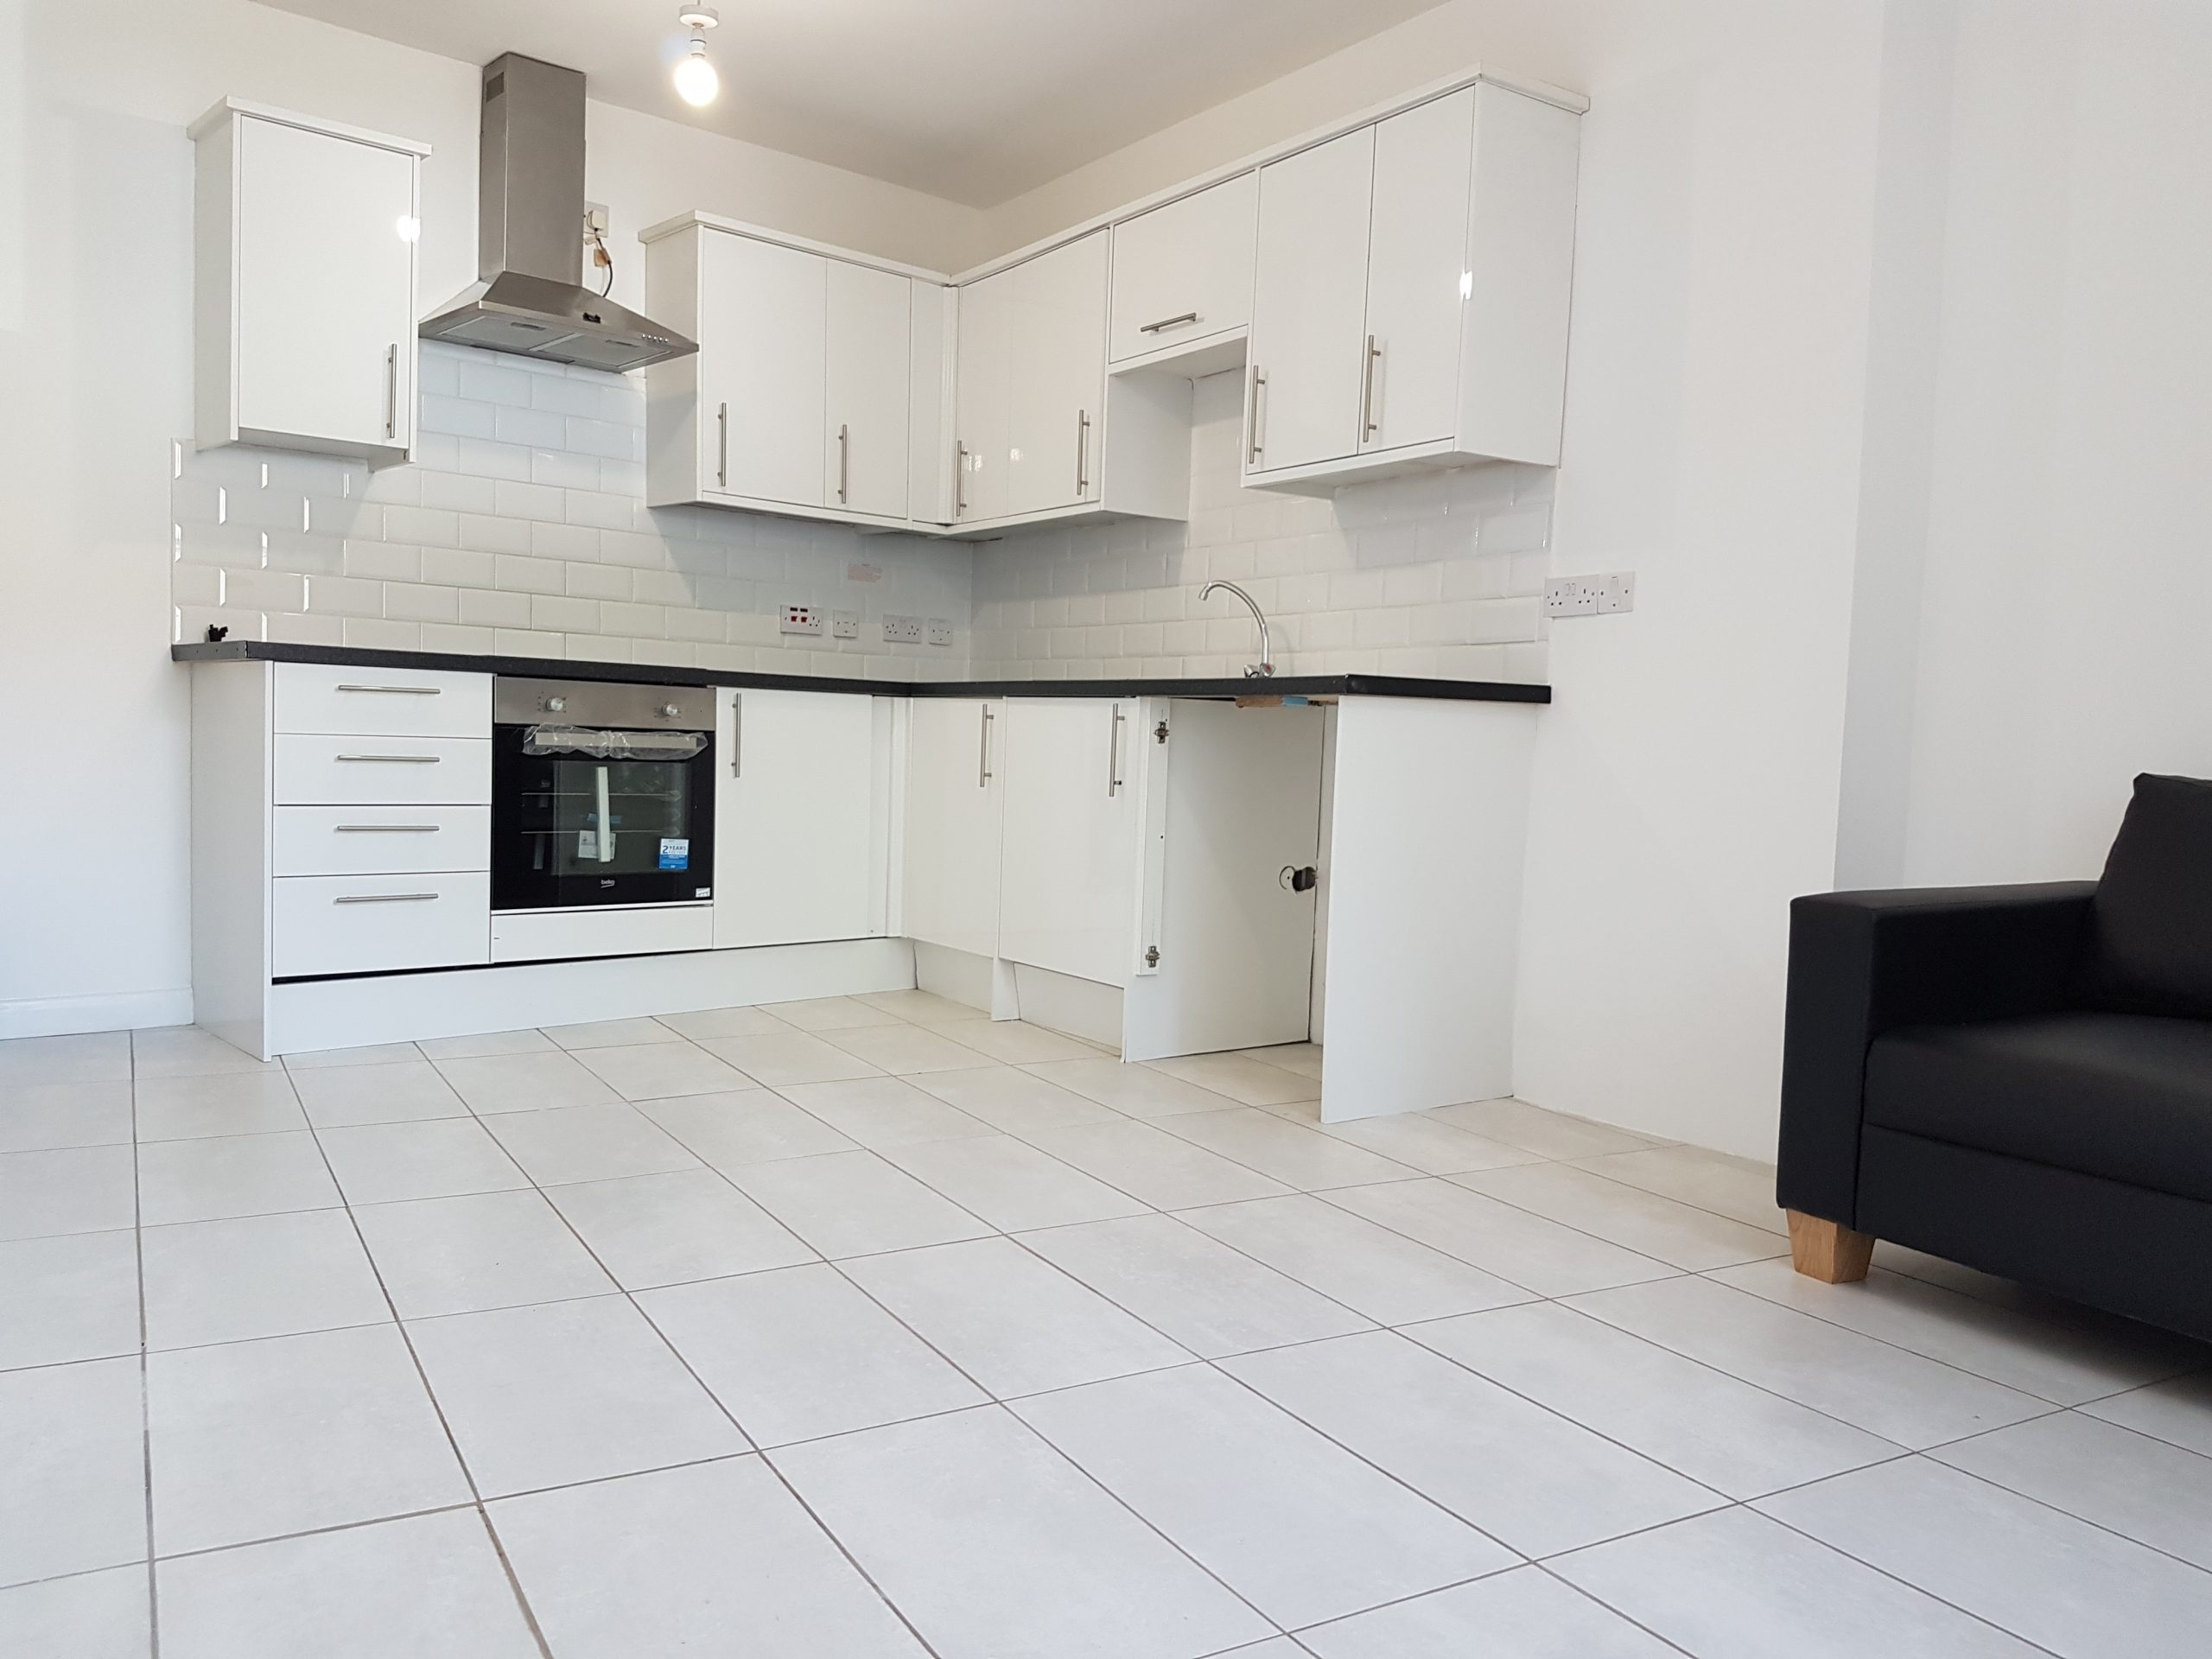 3 Bedroom Flat High Road N17